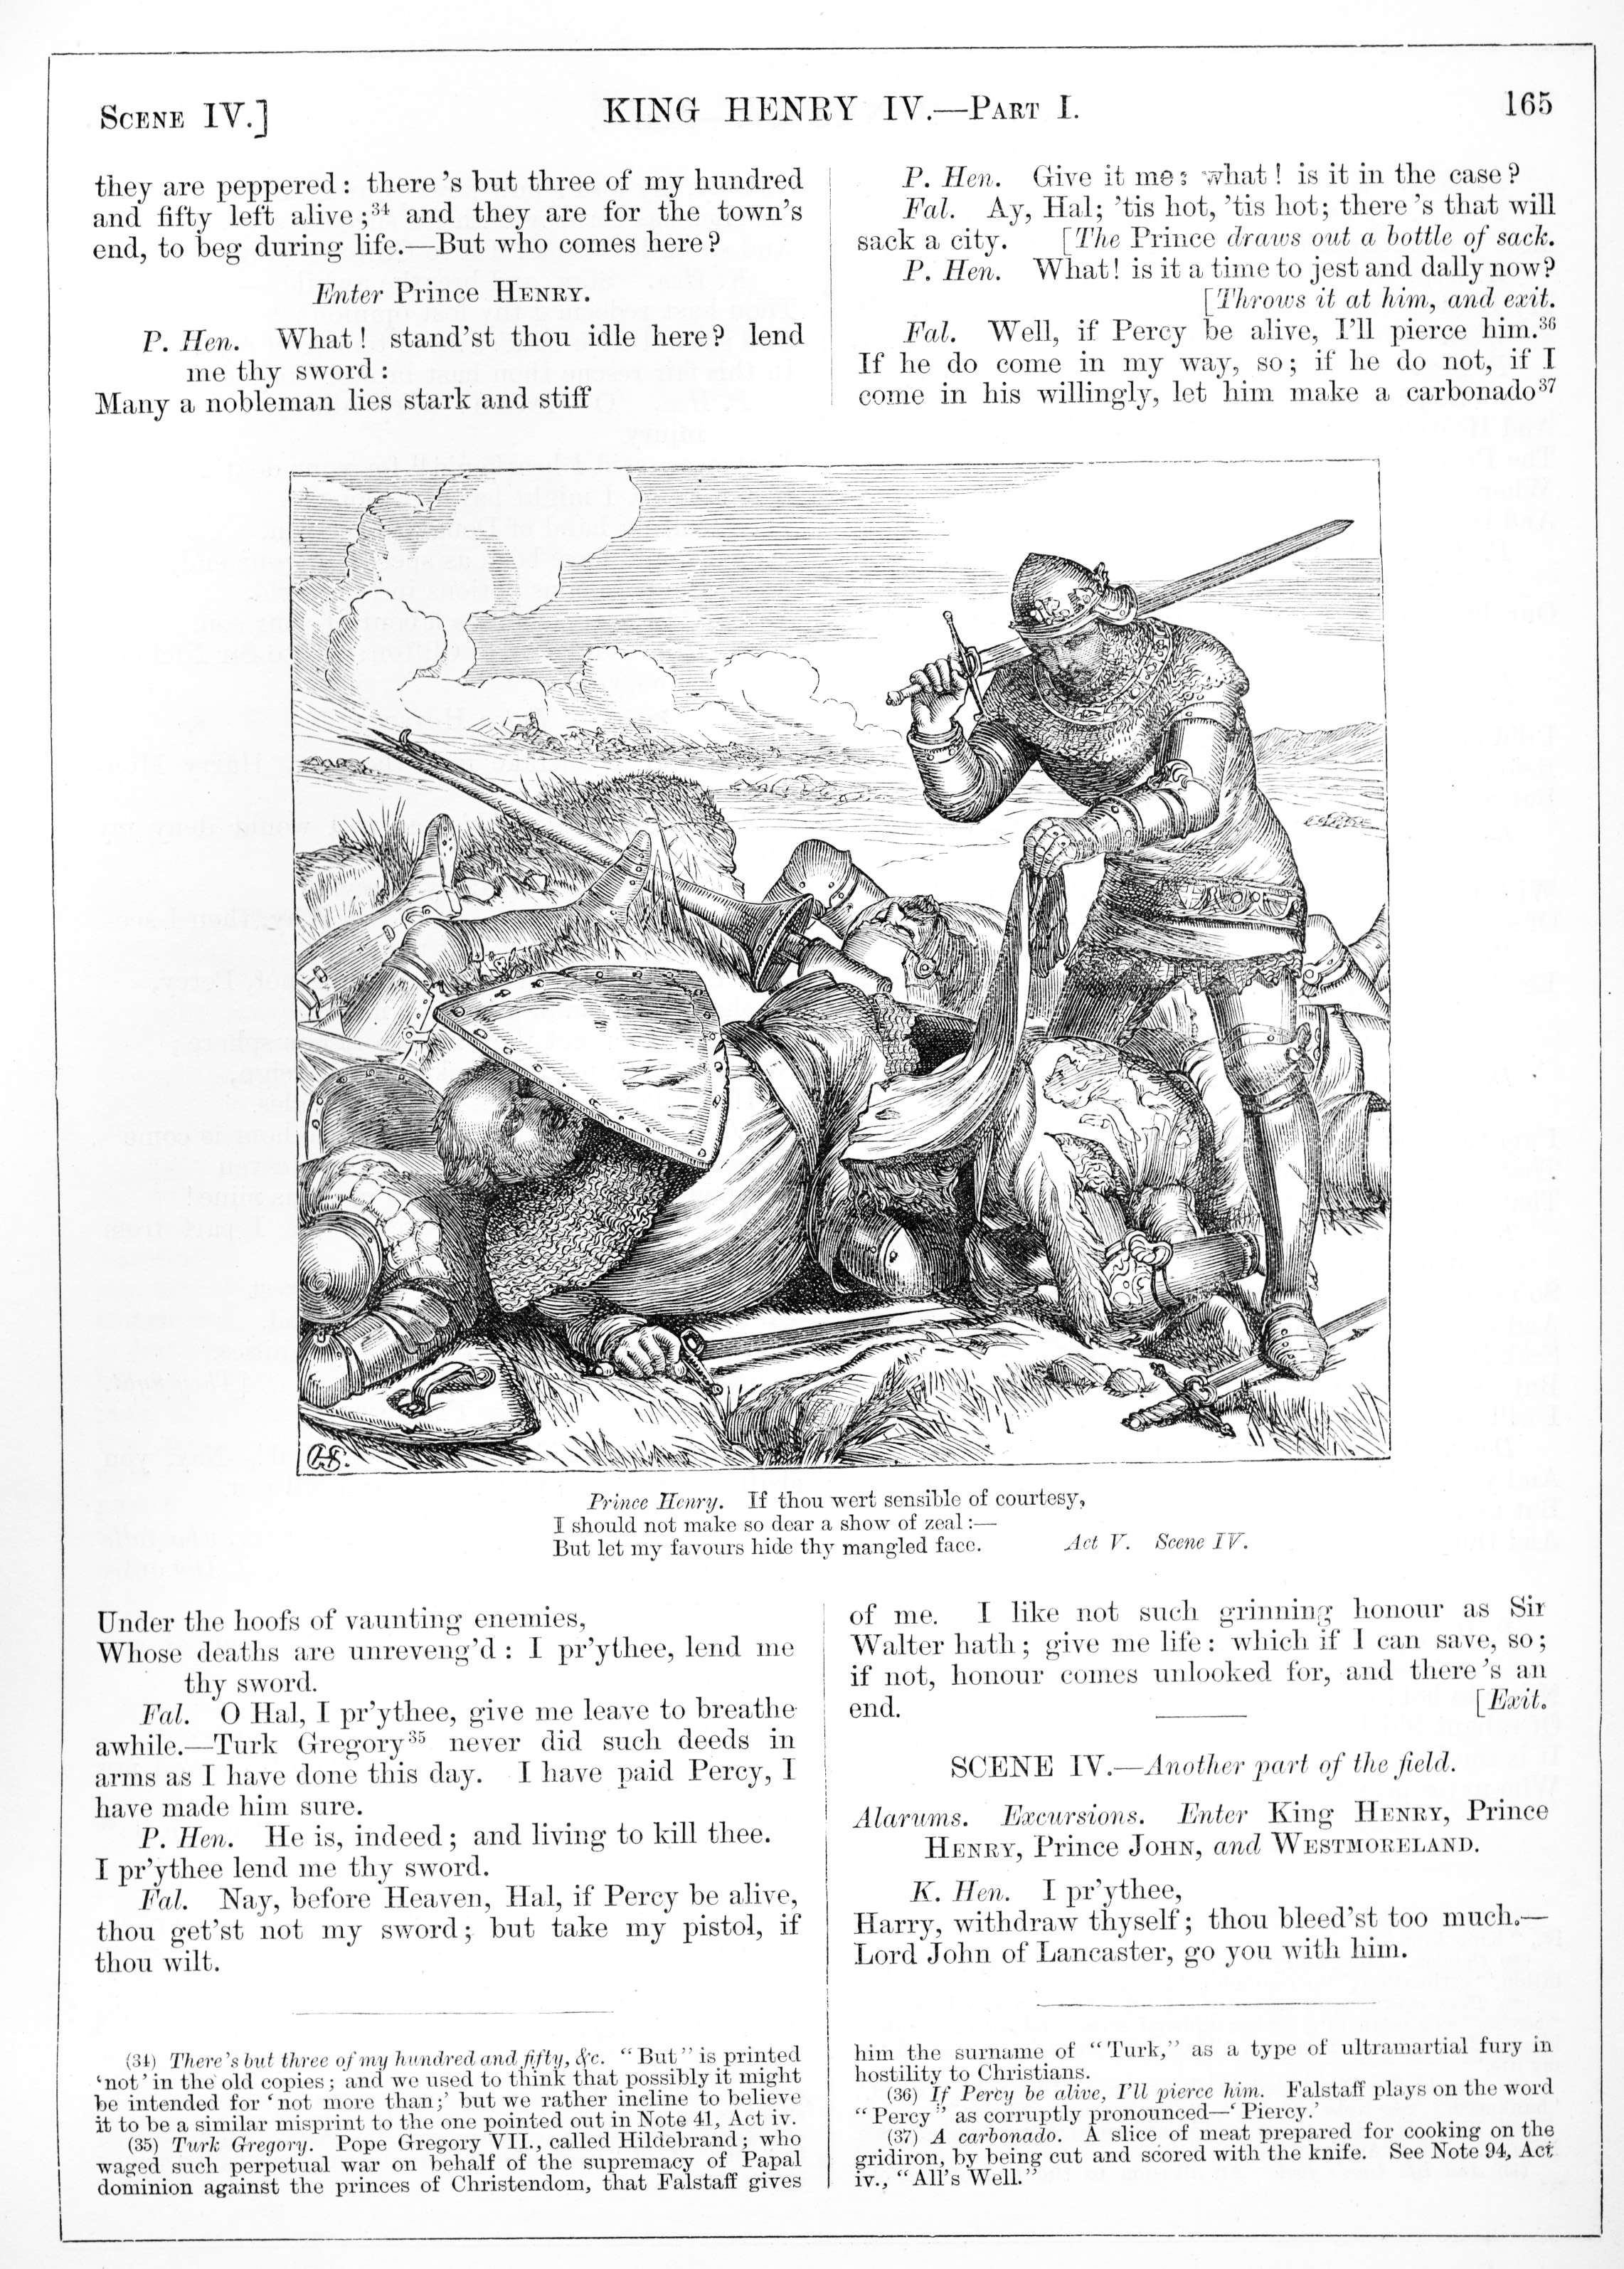 H. C. Selous, King Henry IV Part I, Illustration #16